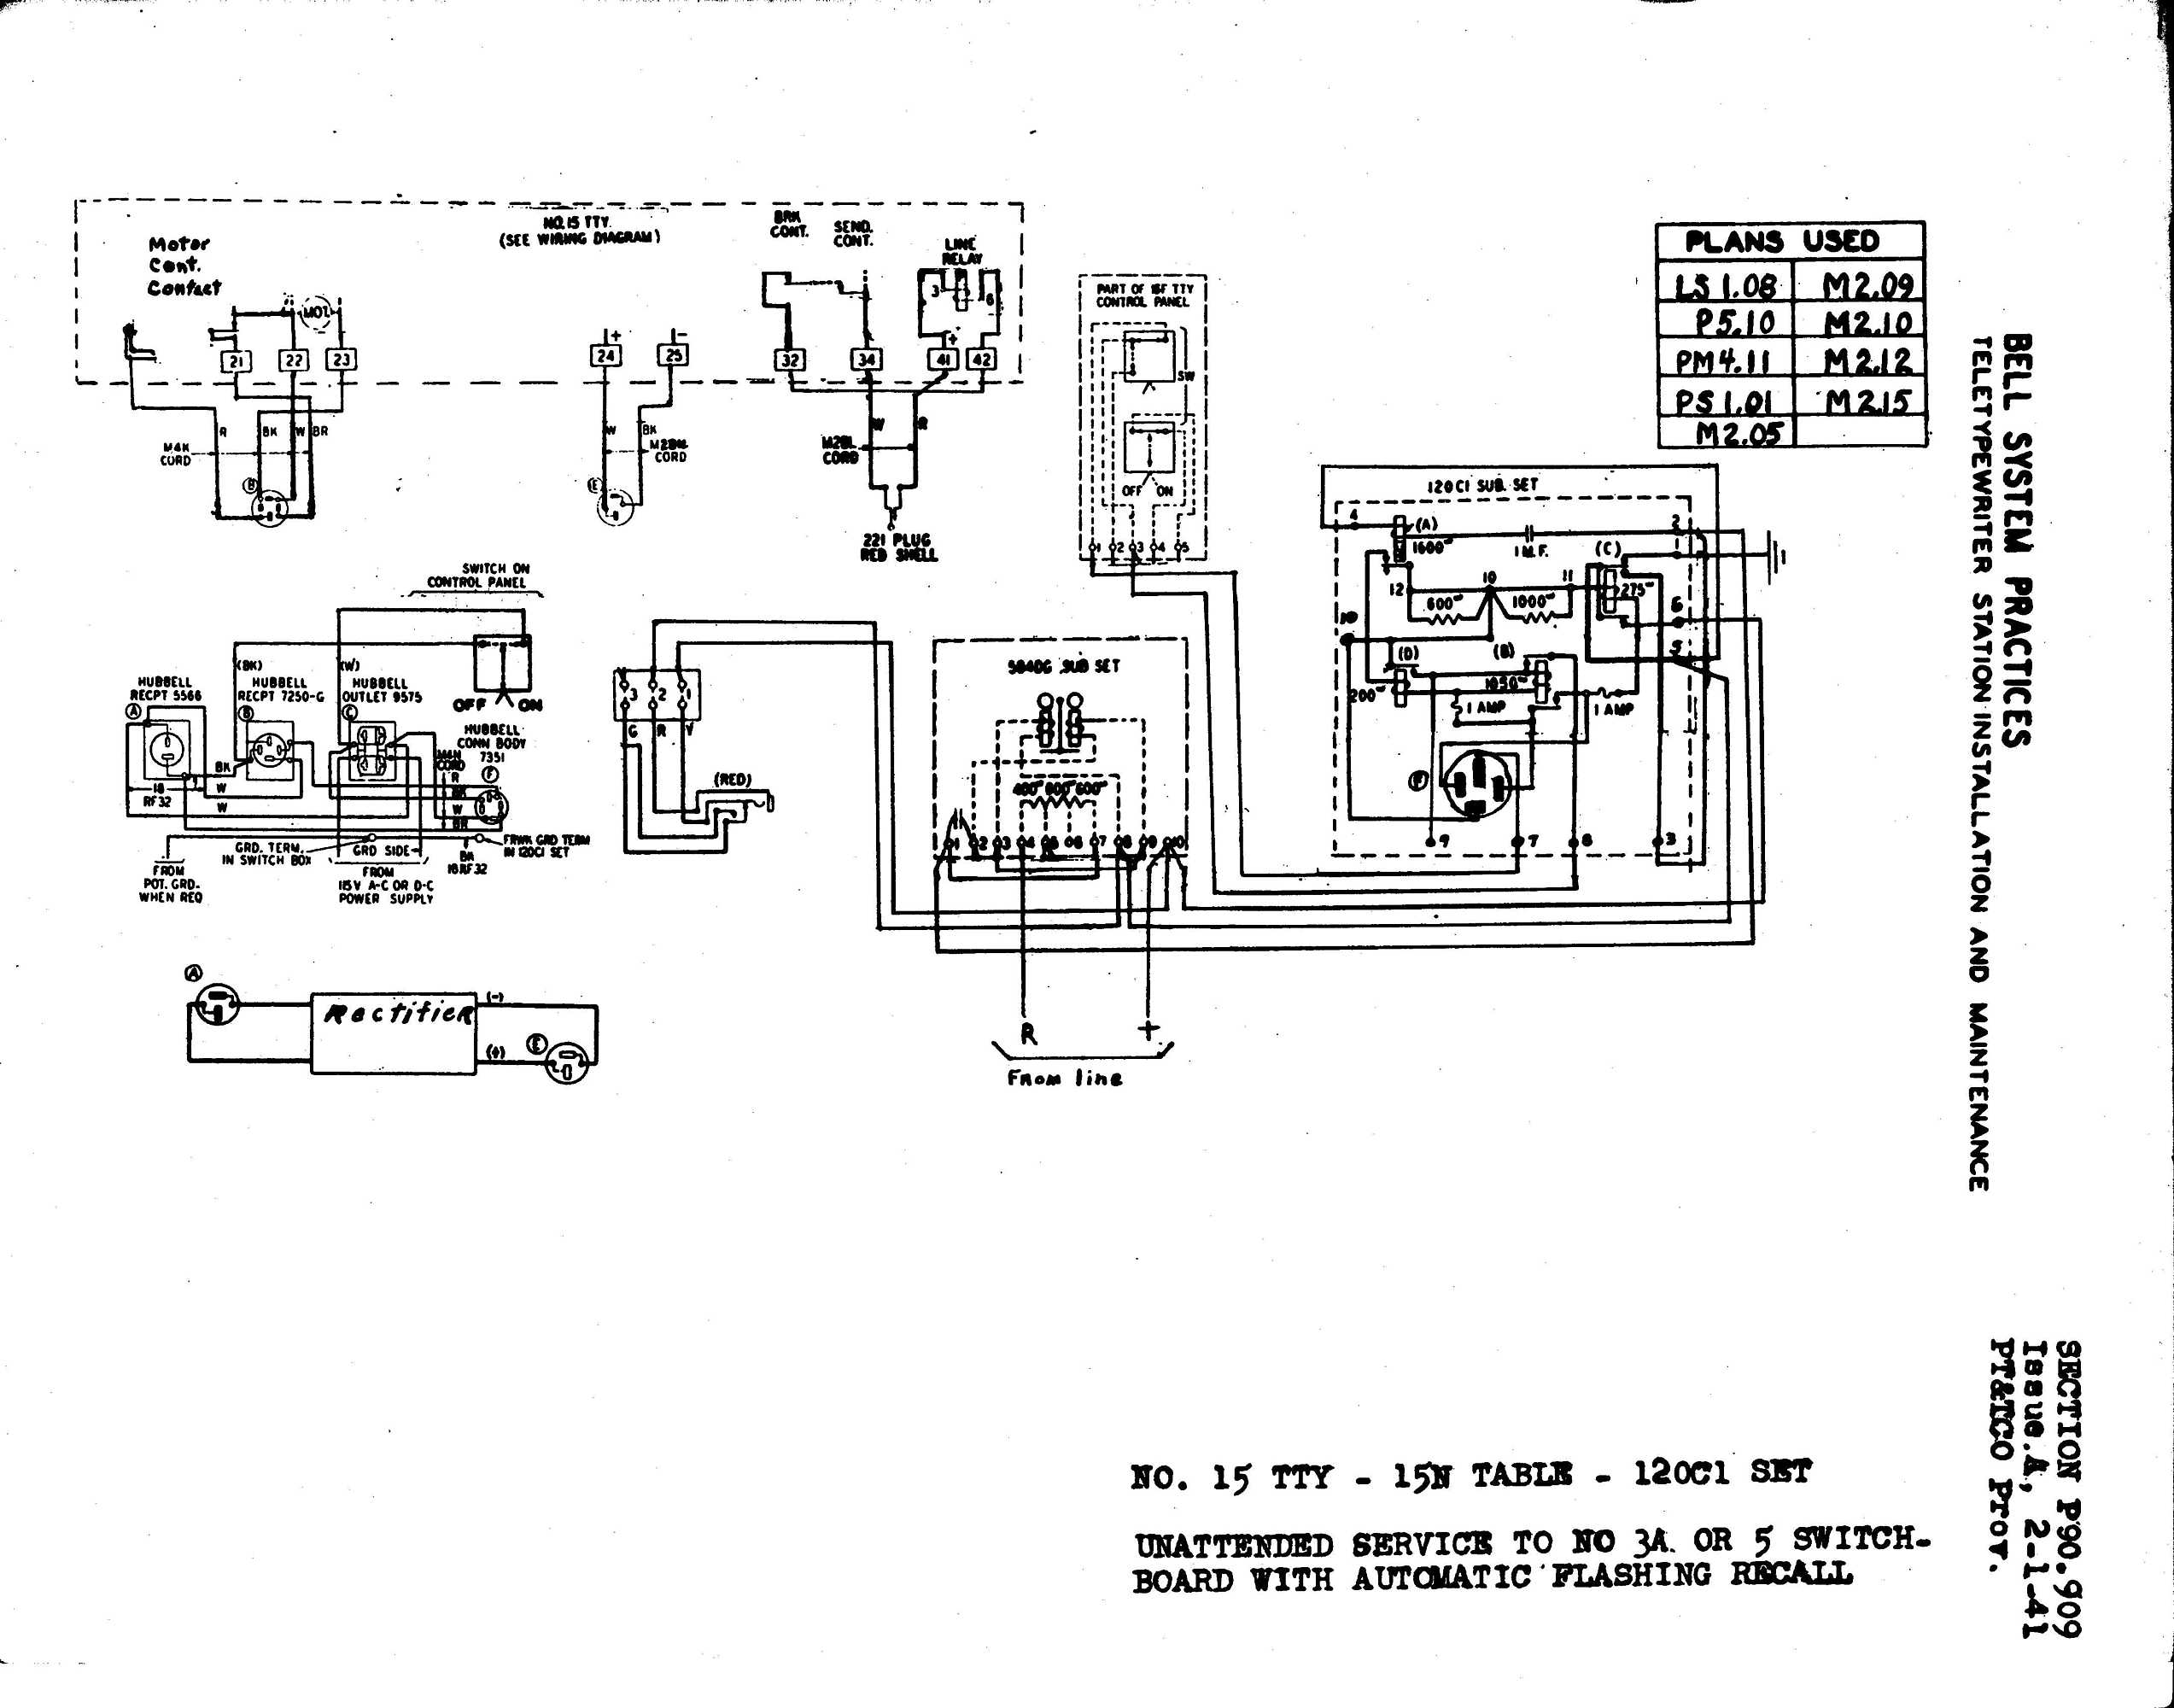 220 service panel wiring diagram